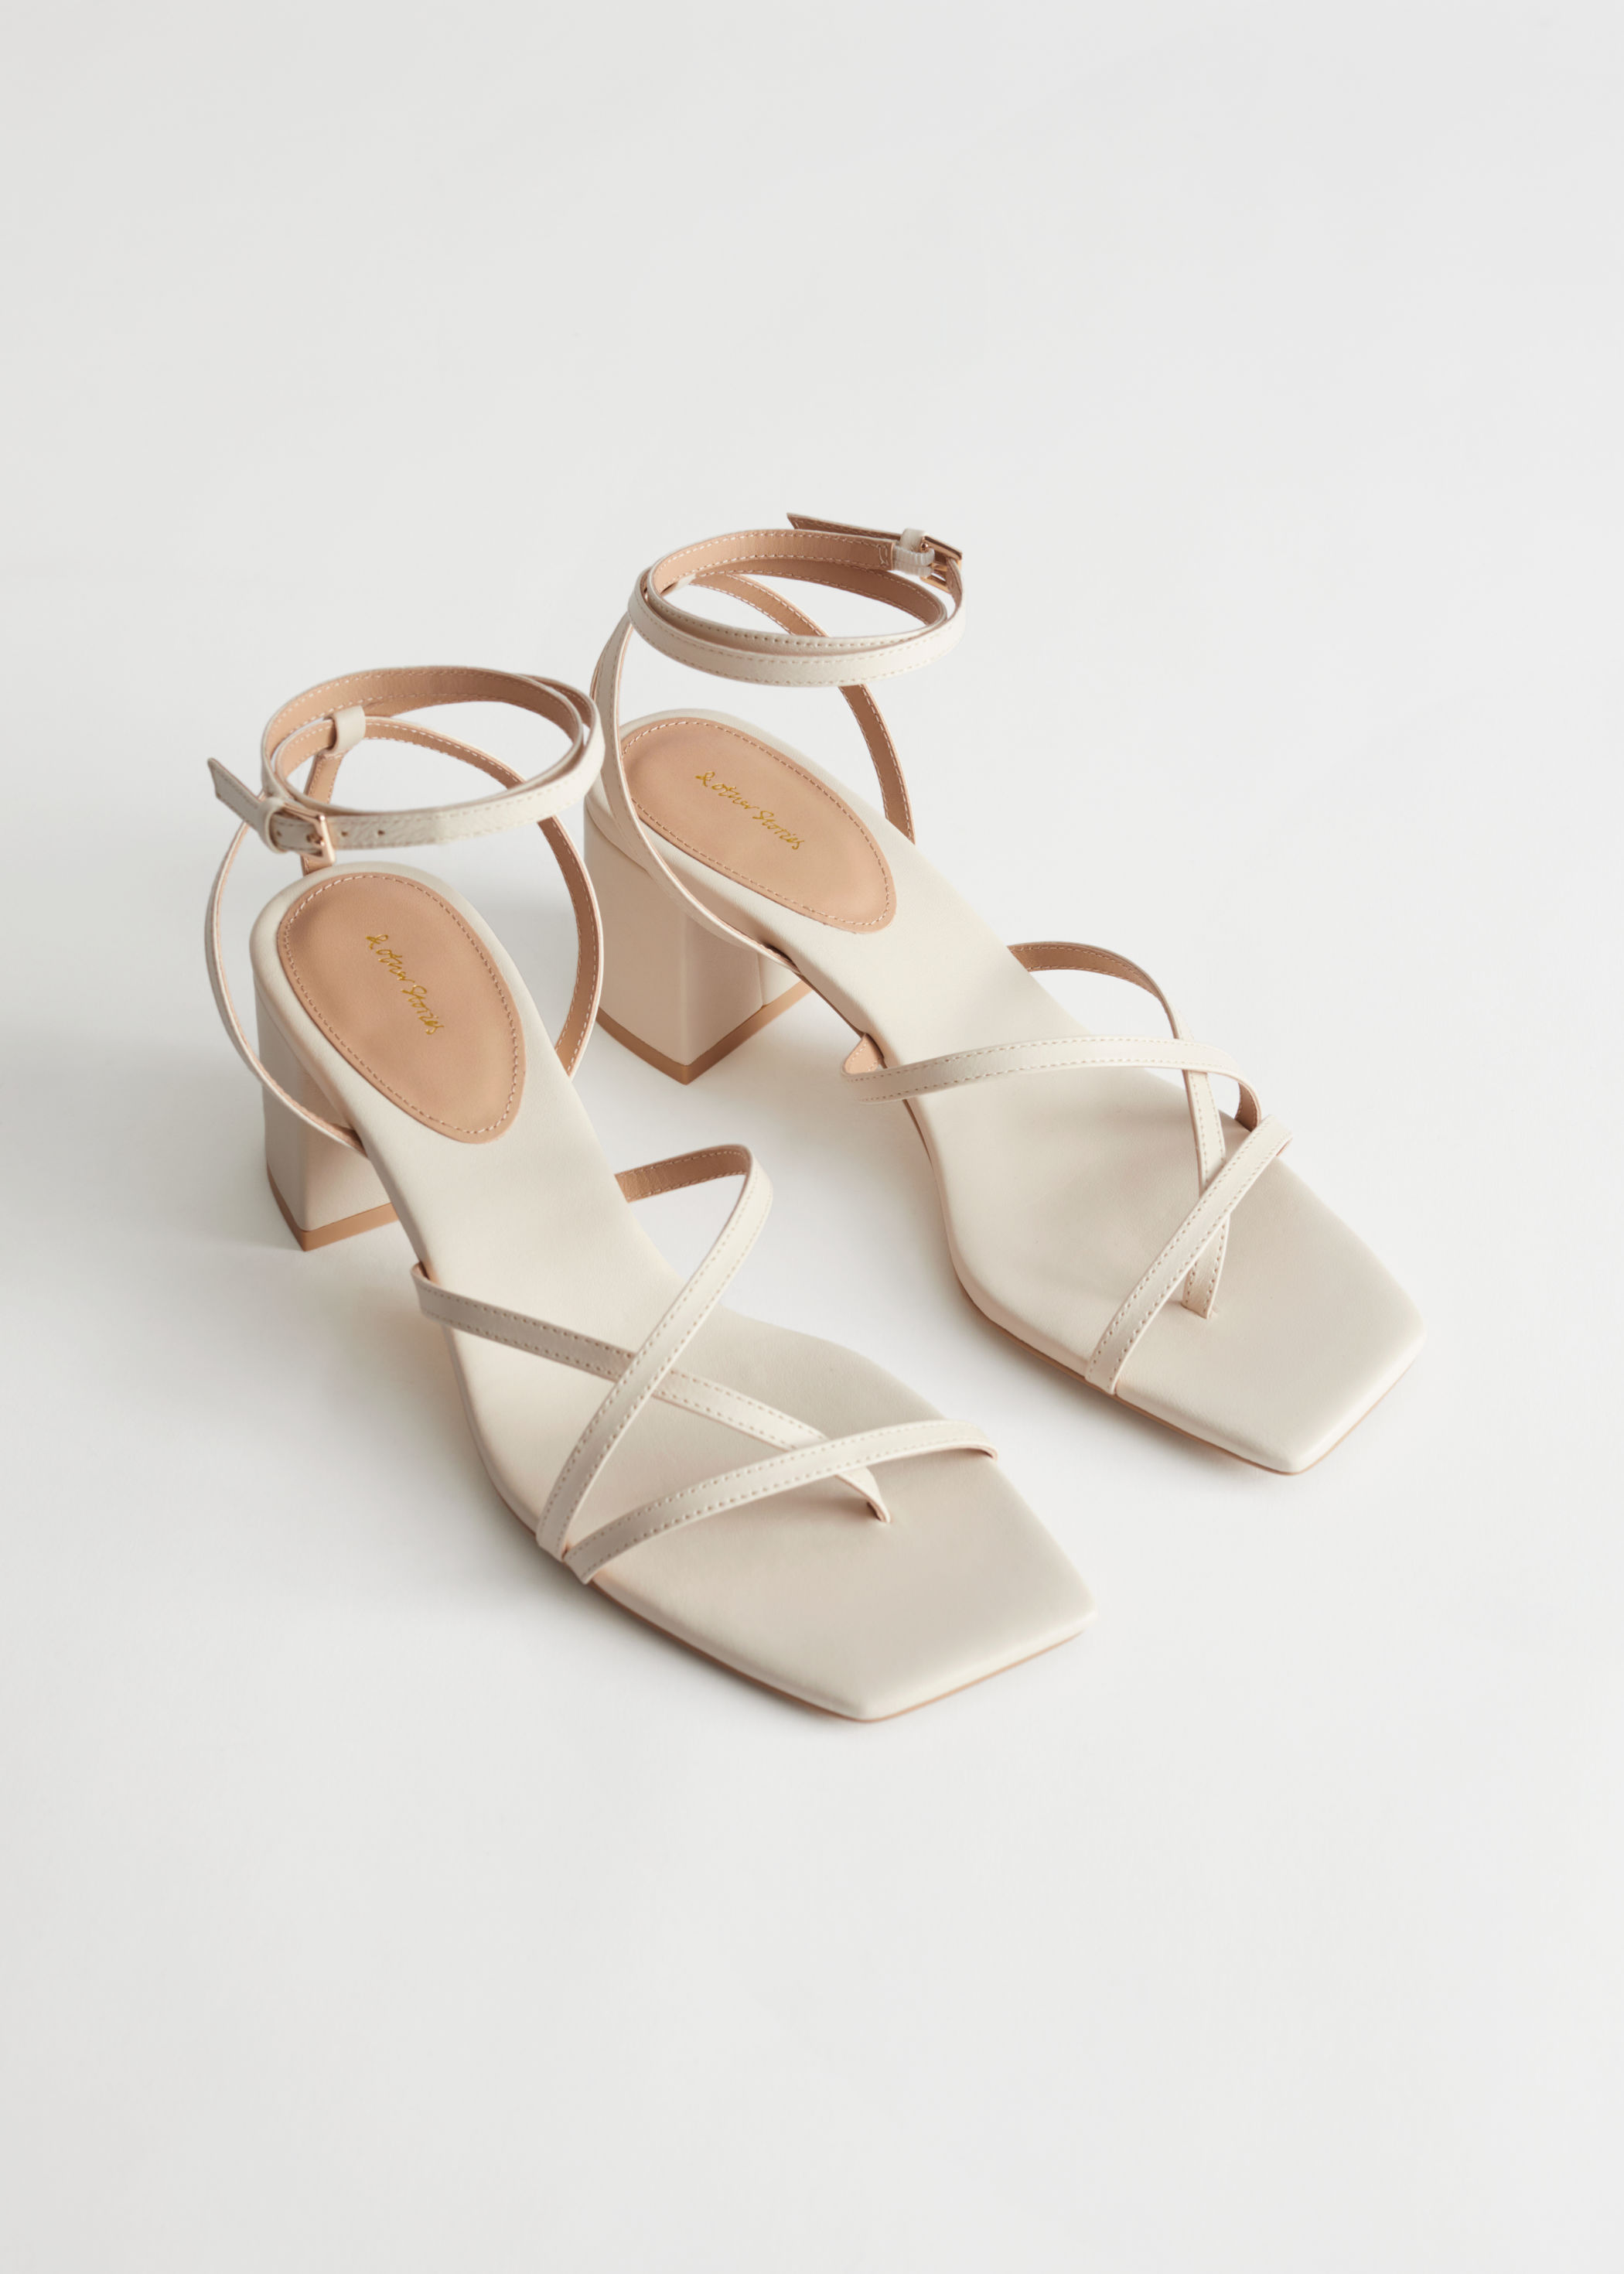 Rejina Pyo x & Other Stories Strappy Leather Heeled Sandals